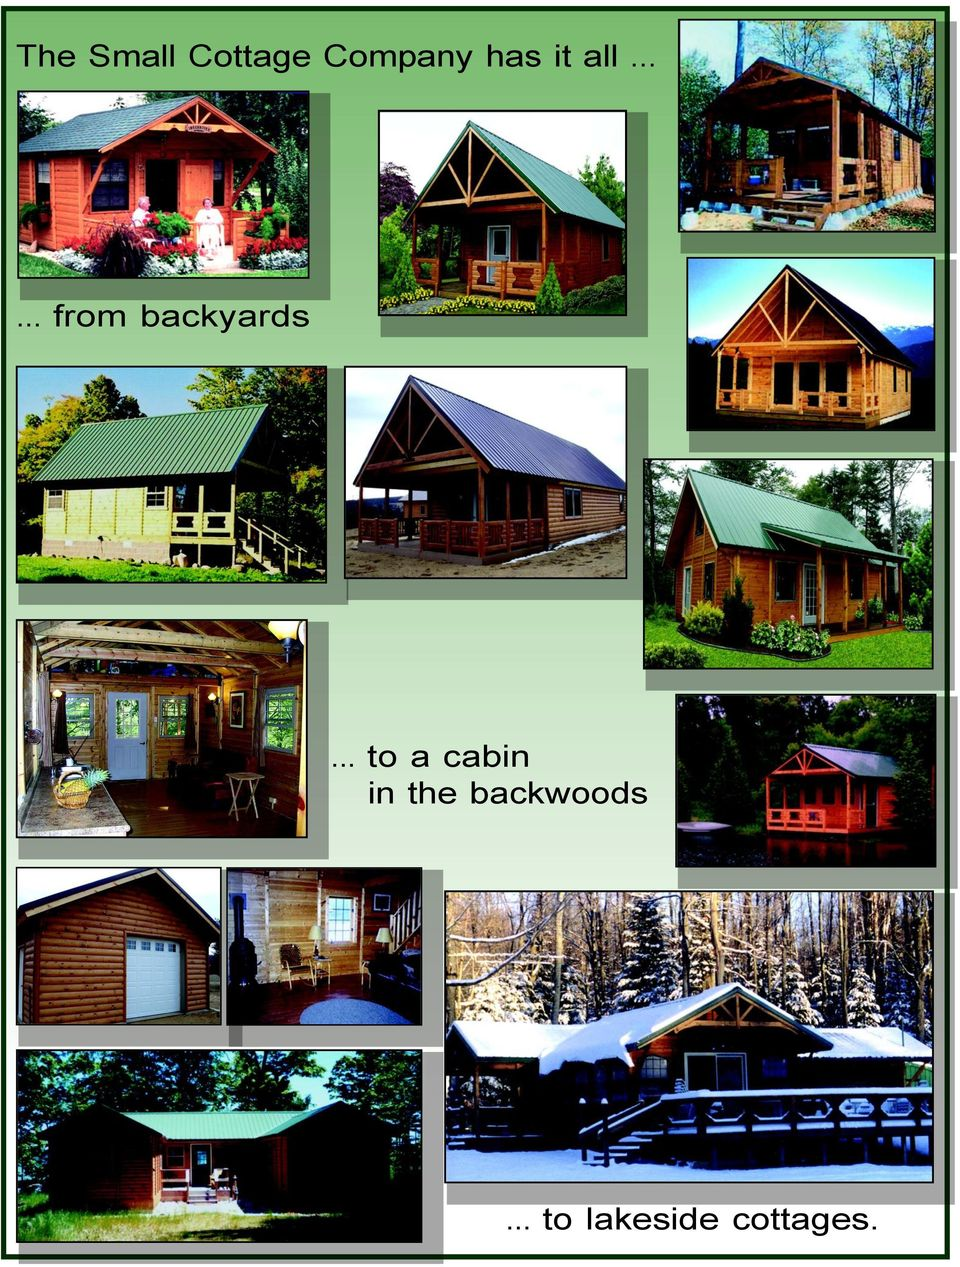 .. to a cabin in the backwoods.